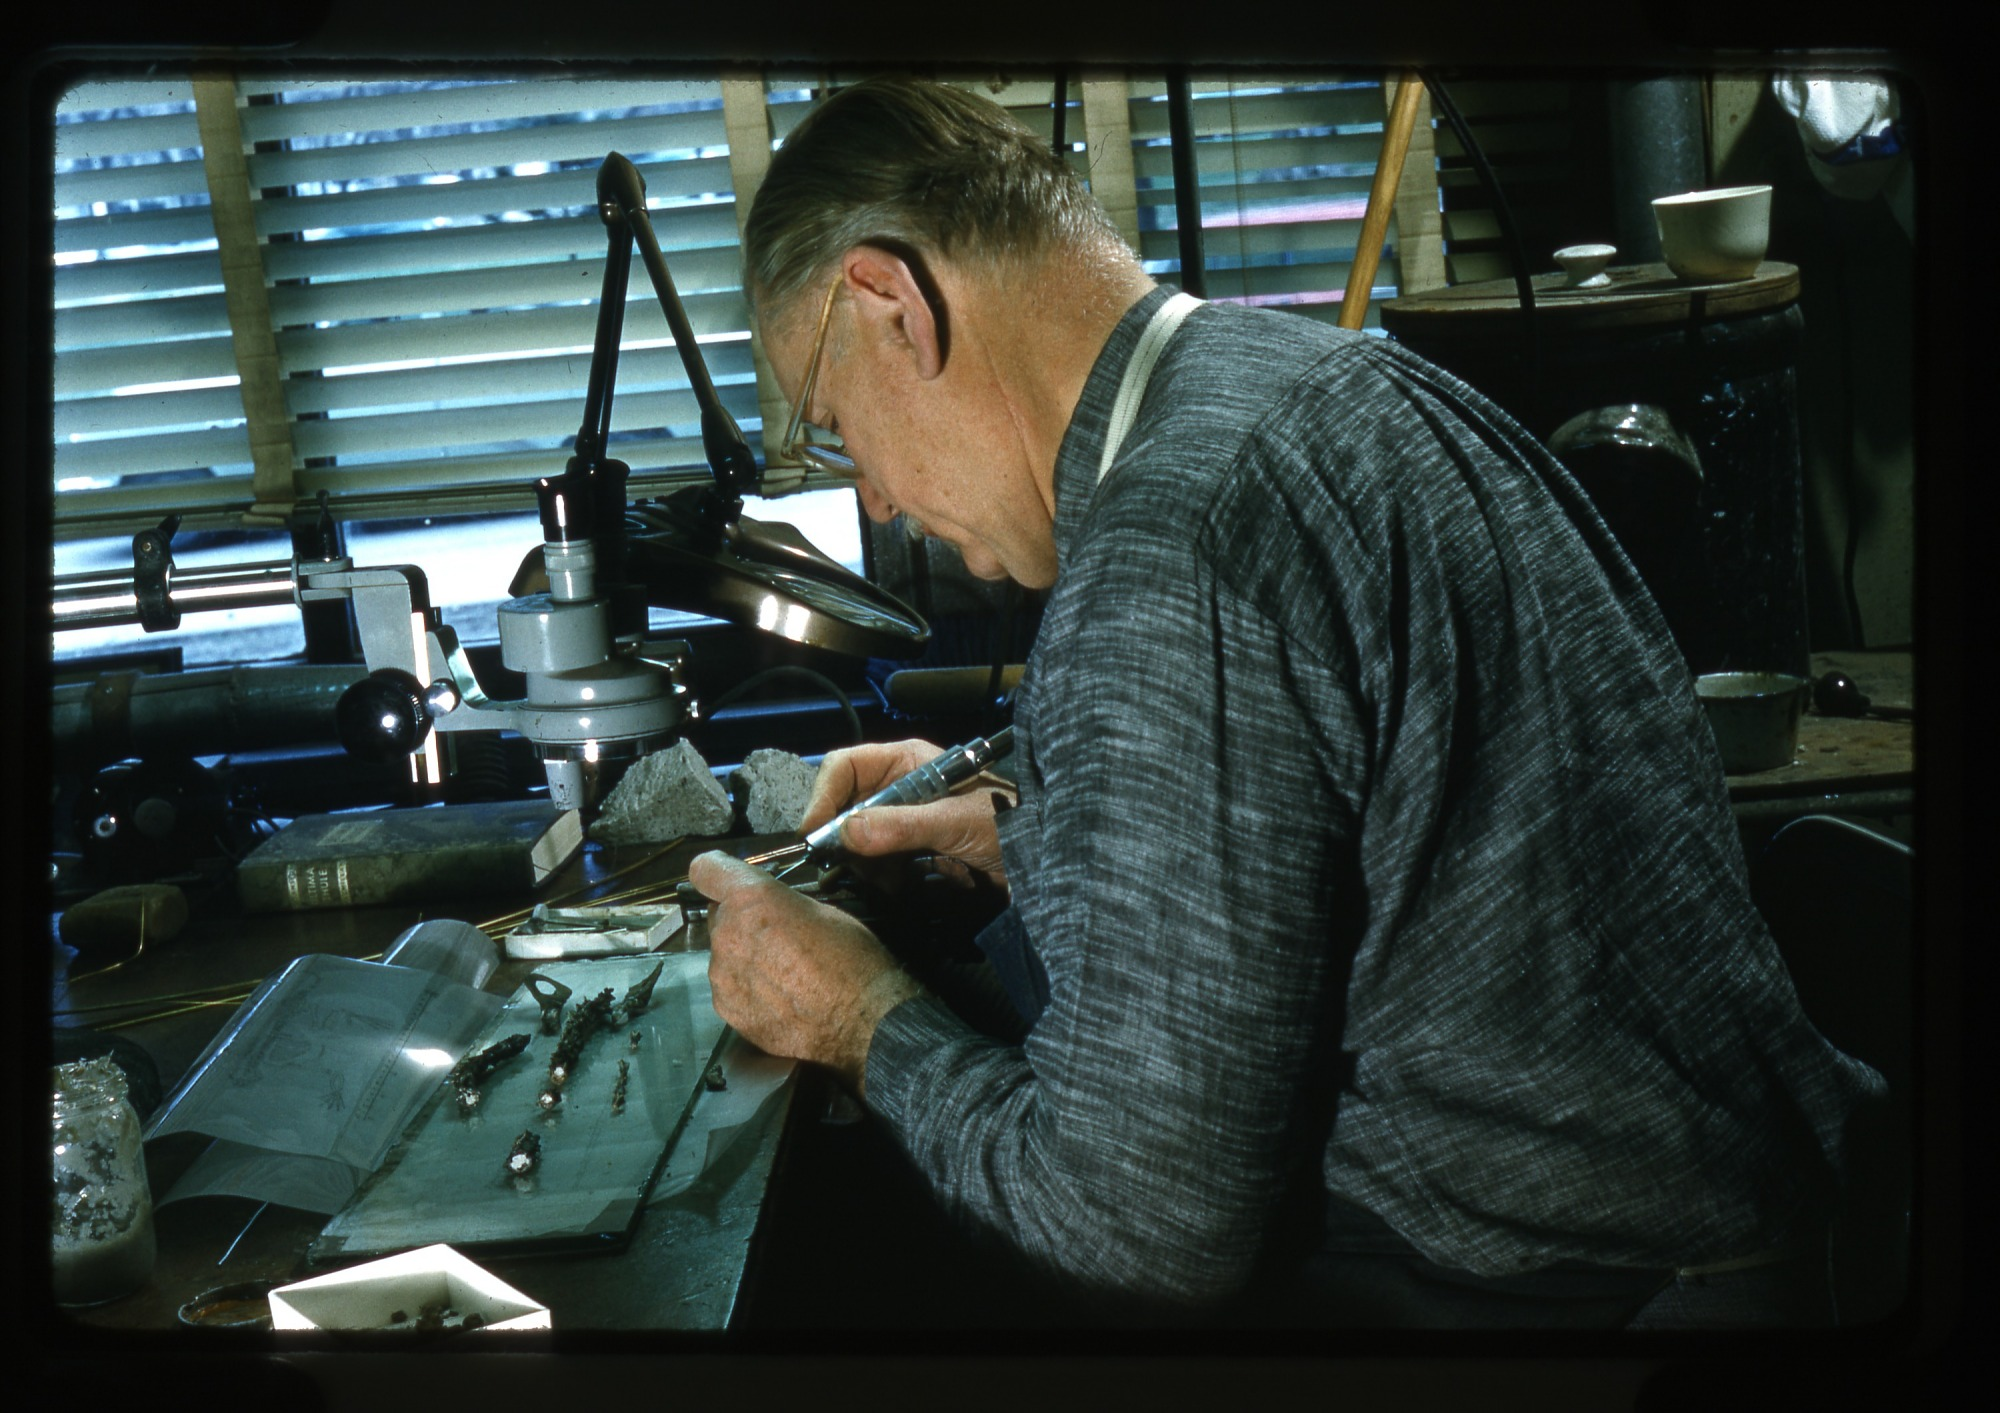 Nick Hotton Working, Undated, Smithsonian Institution Archives, SIA Acc. 00-084 [SIA2013-07650].